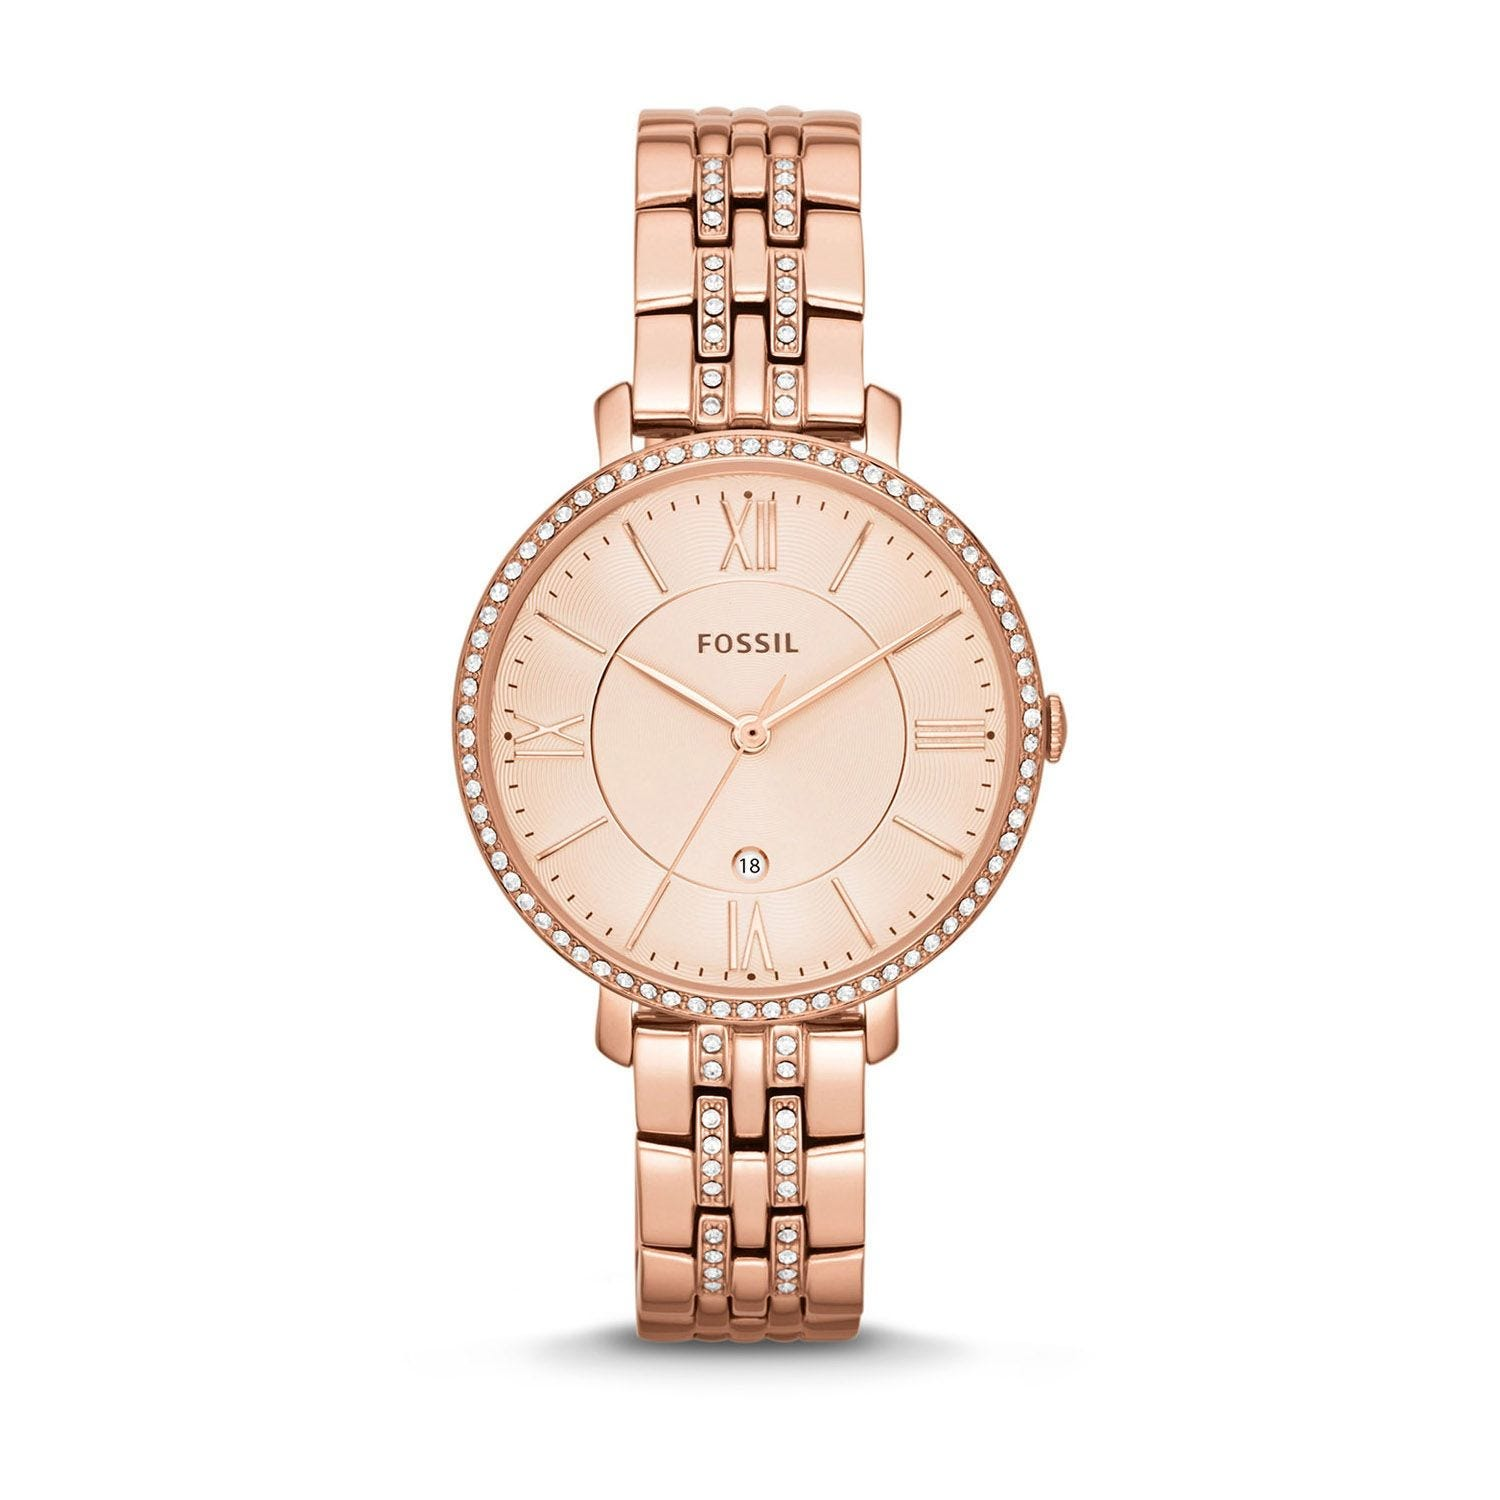 Fossil Jacqueline Ladies' Crystal Rose Gold-plated Bracelet Watch